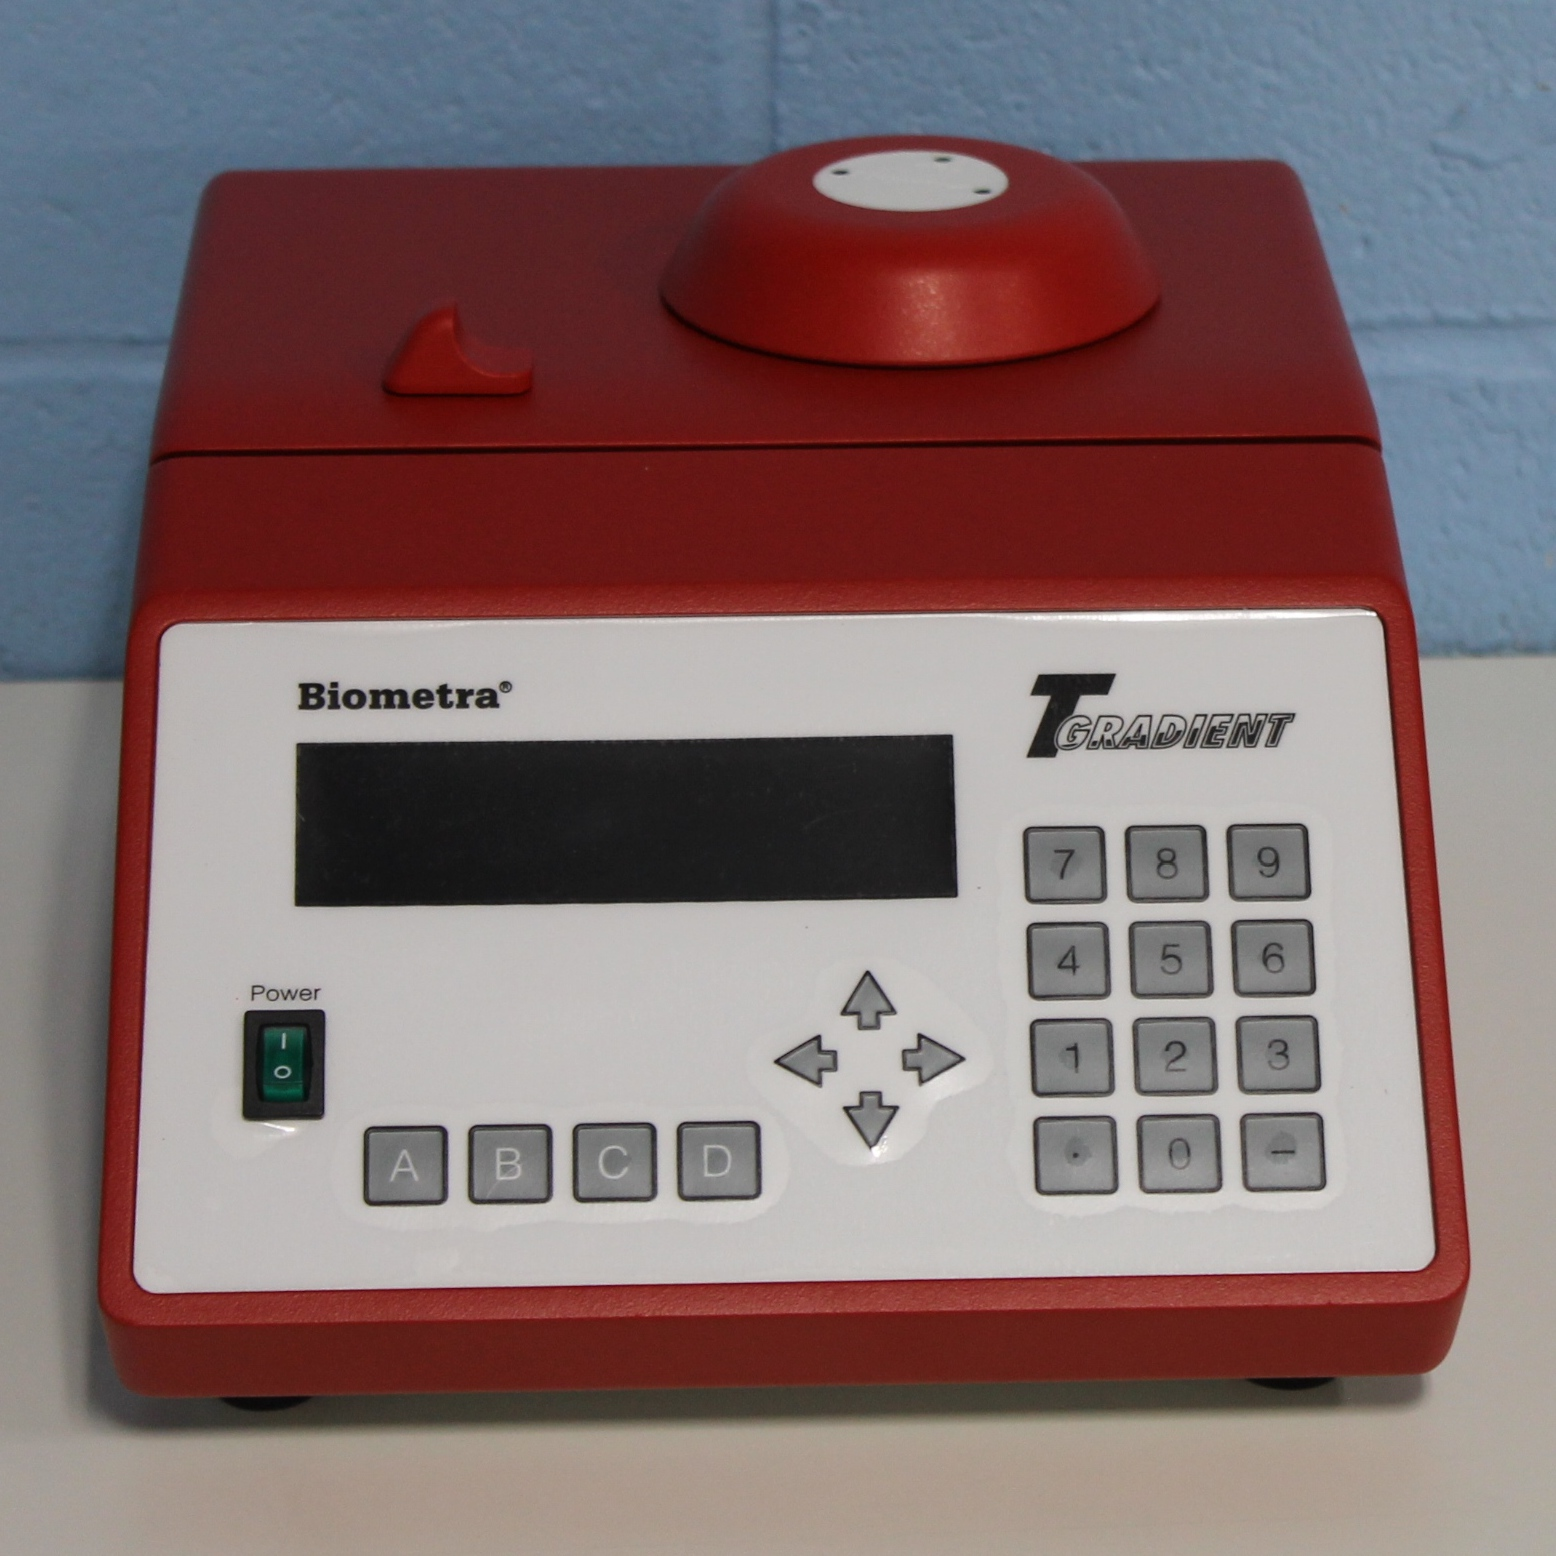 Biometra Thermocycler T-Gradient ThermoBlock Image